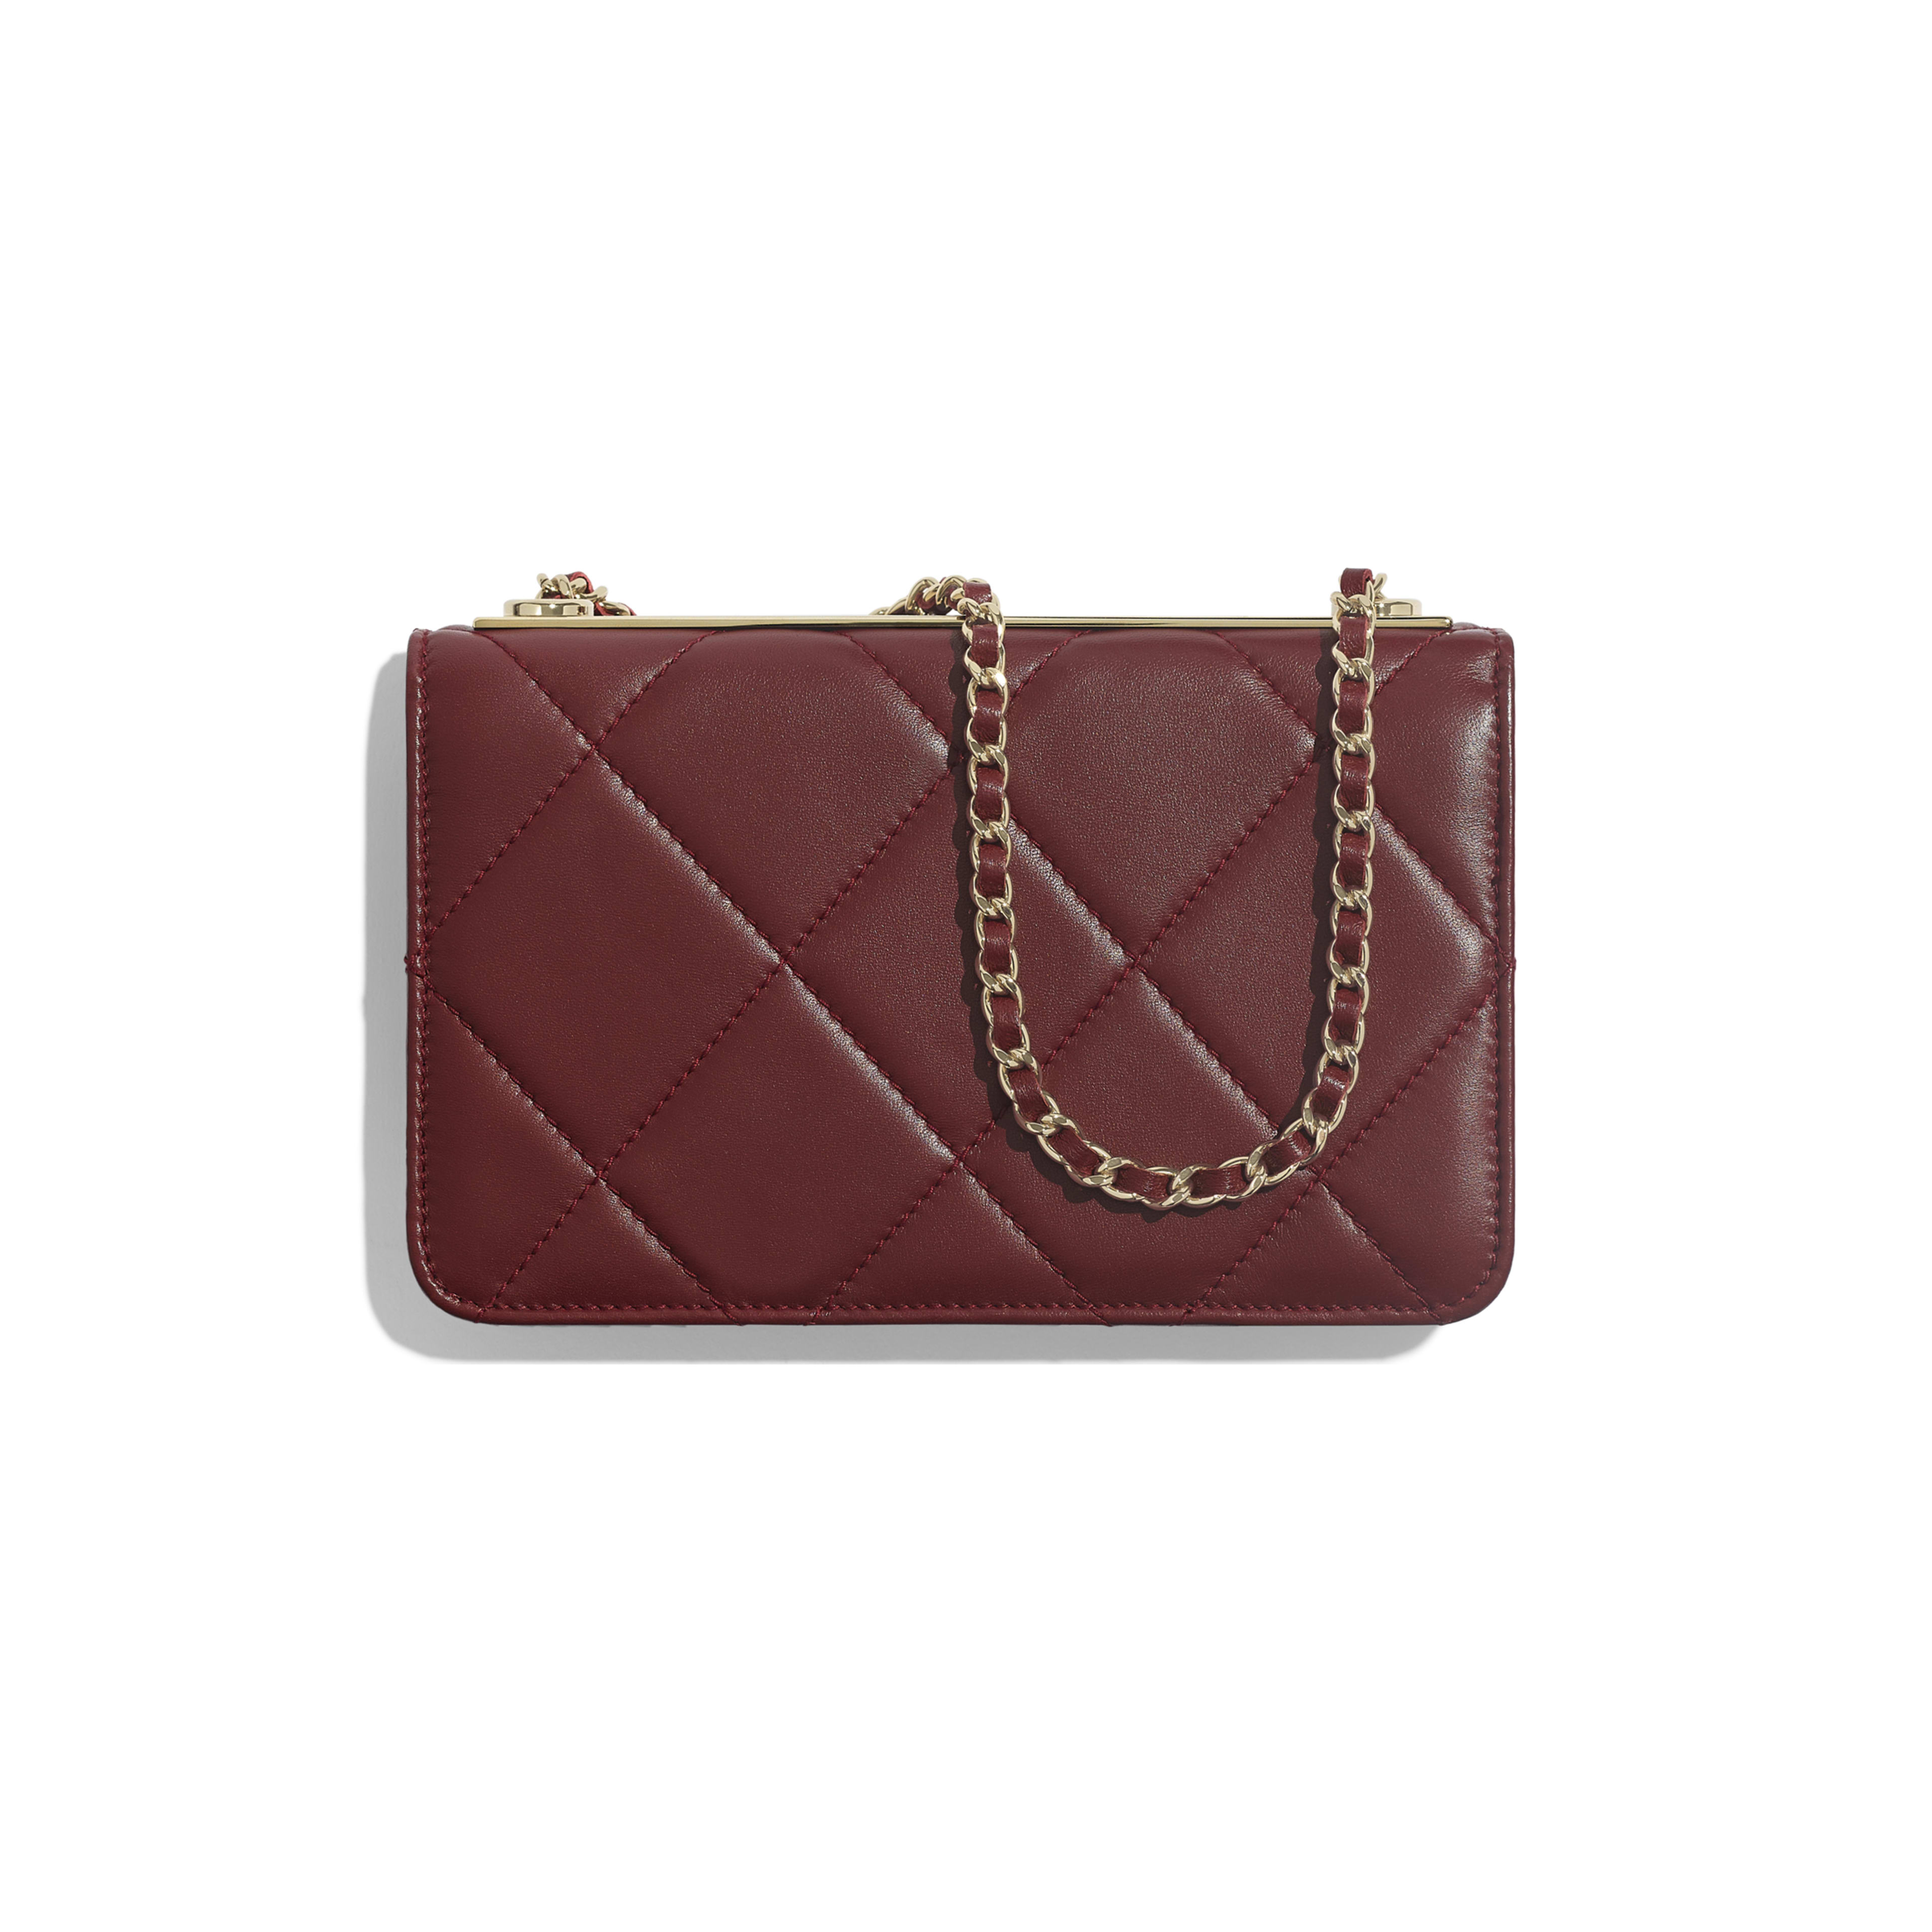 Wallet on Chain - Burgundy - Lambskin & Gold-Tone Metal - Alternative view - see full sized version